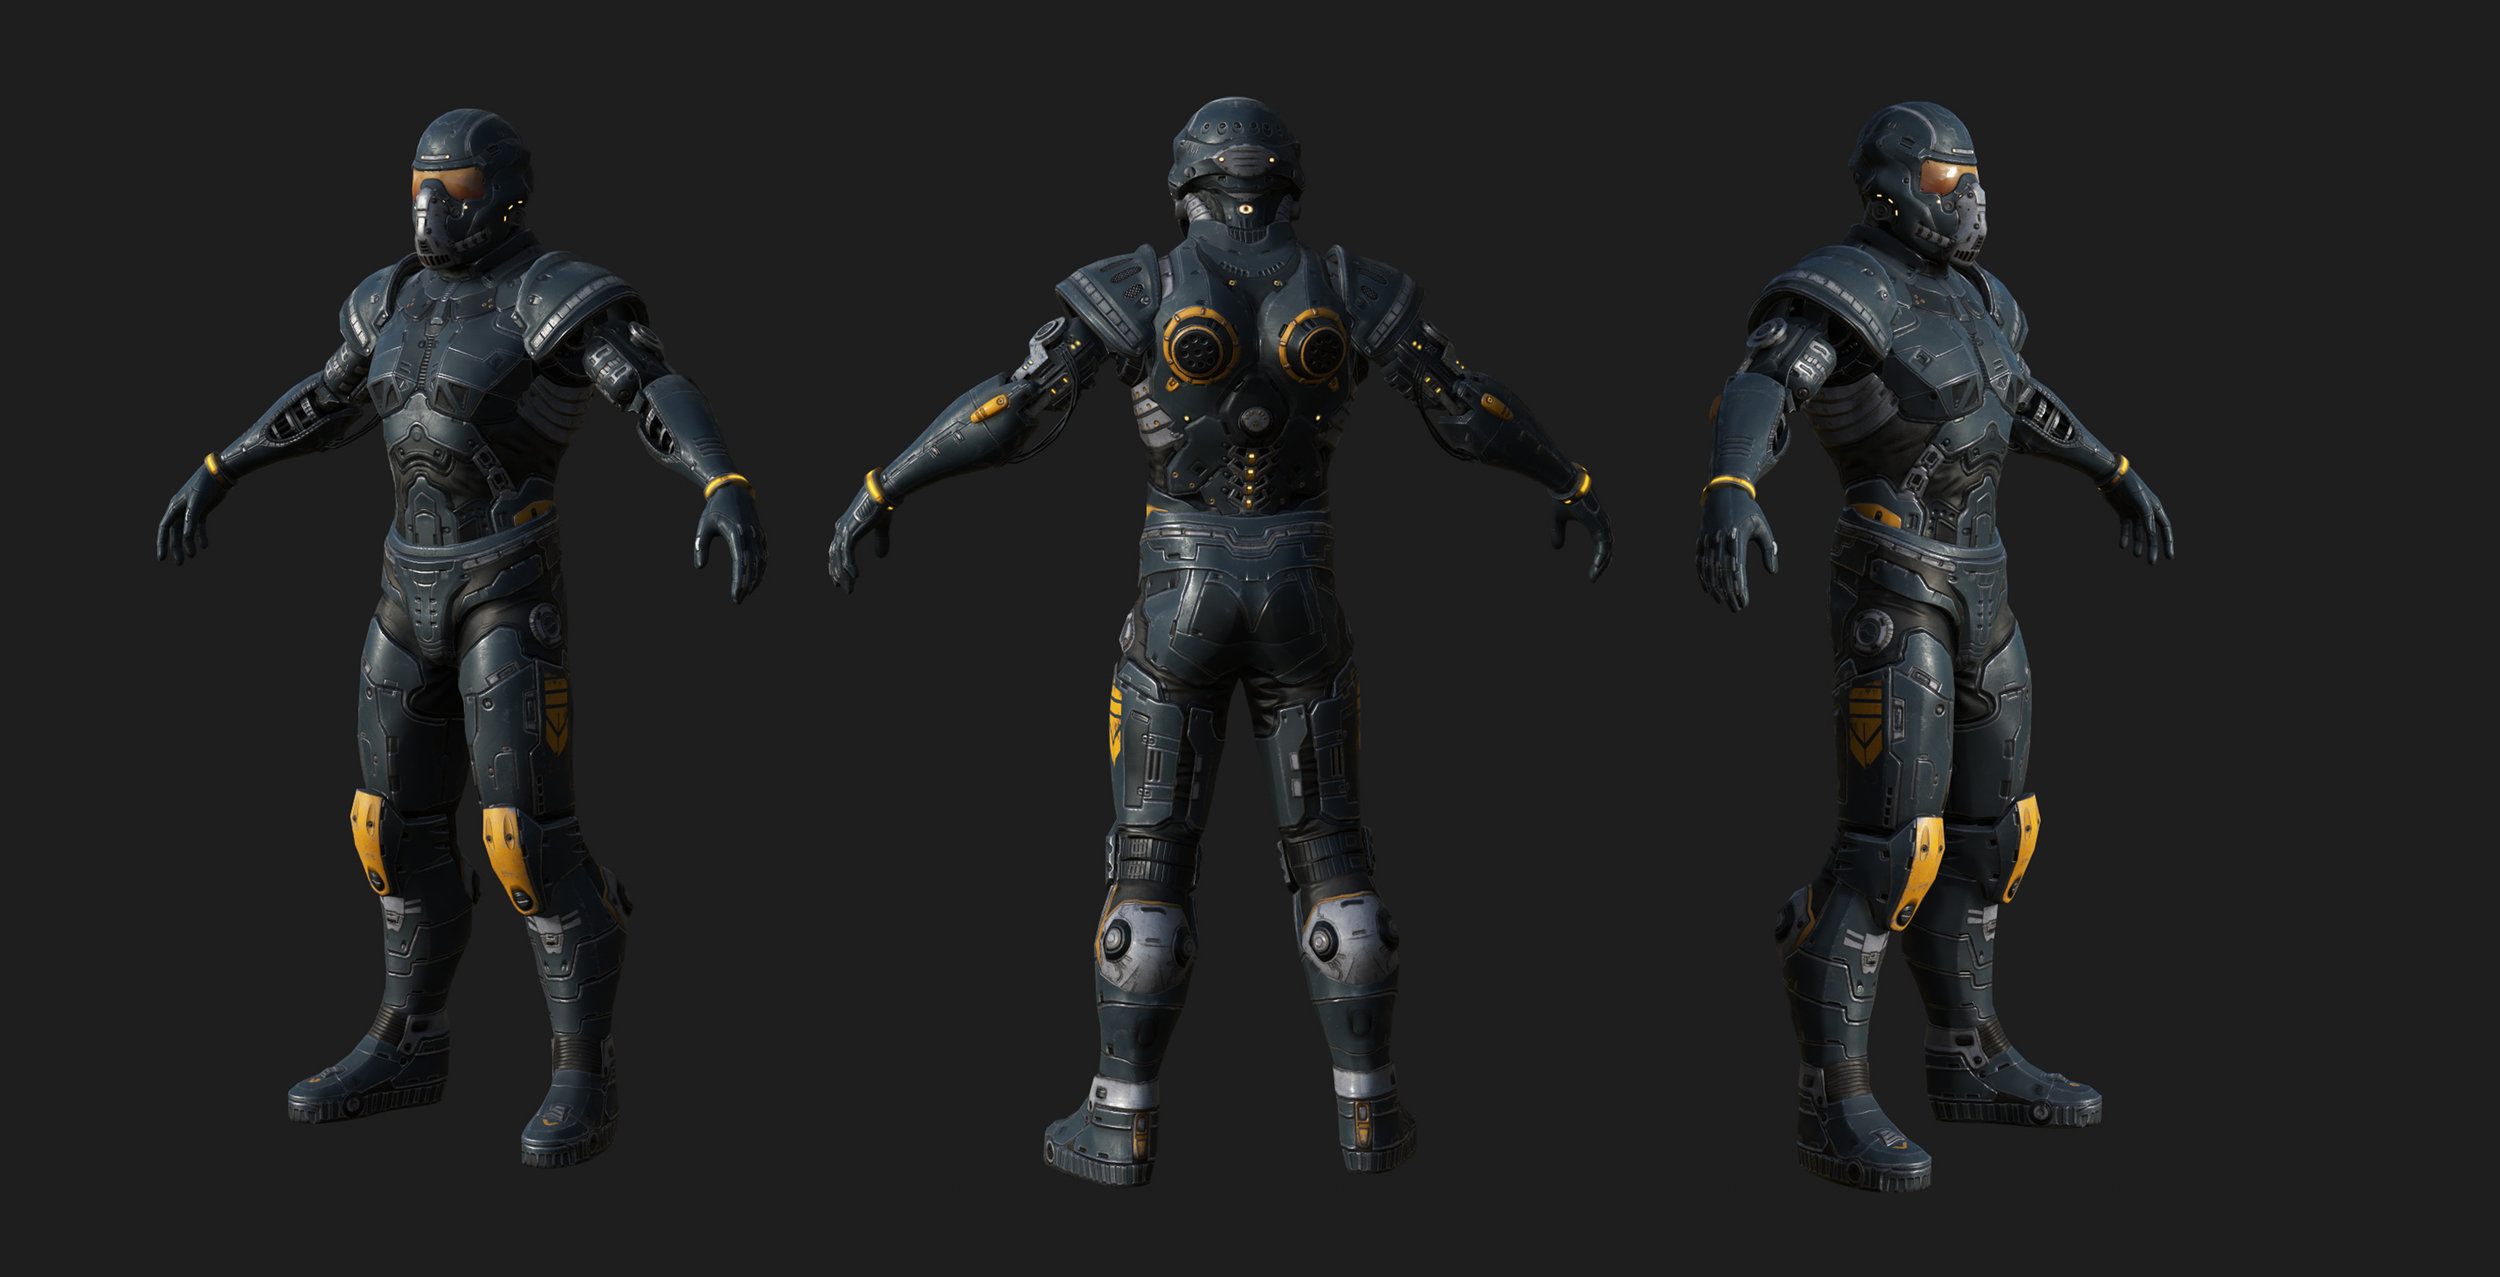 Finished Textures for Armor/Evasion hybrid Gear set - Power Armor